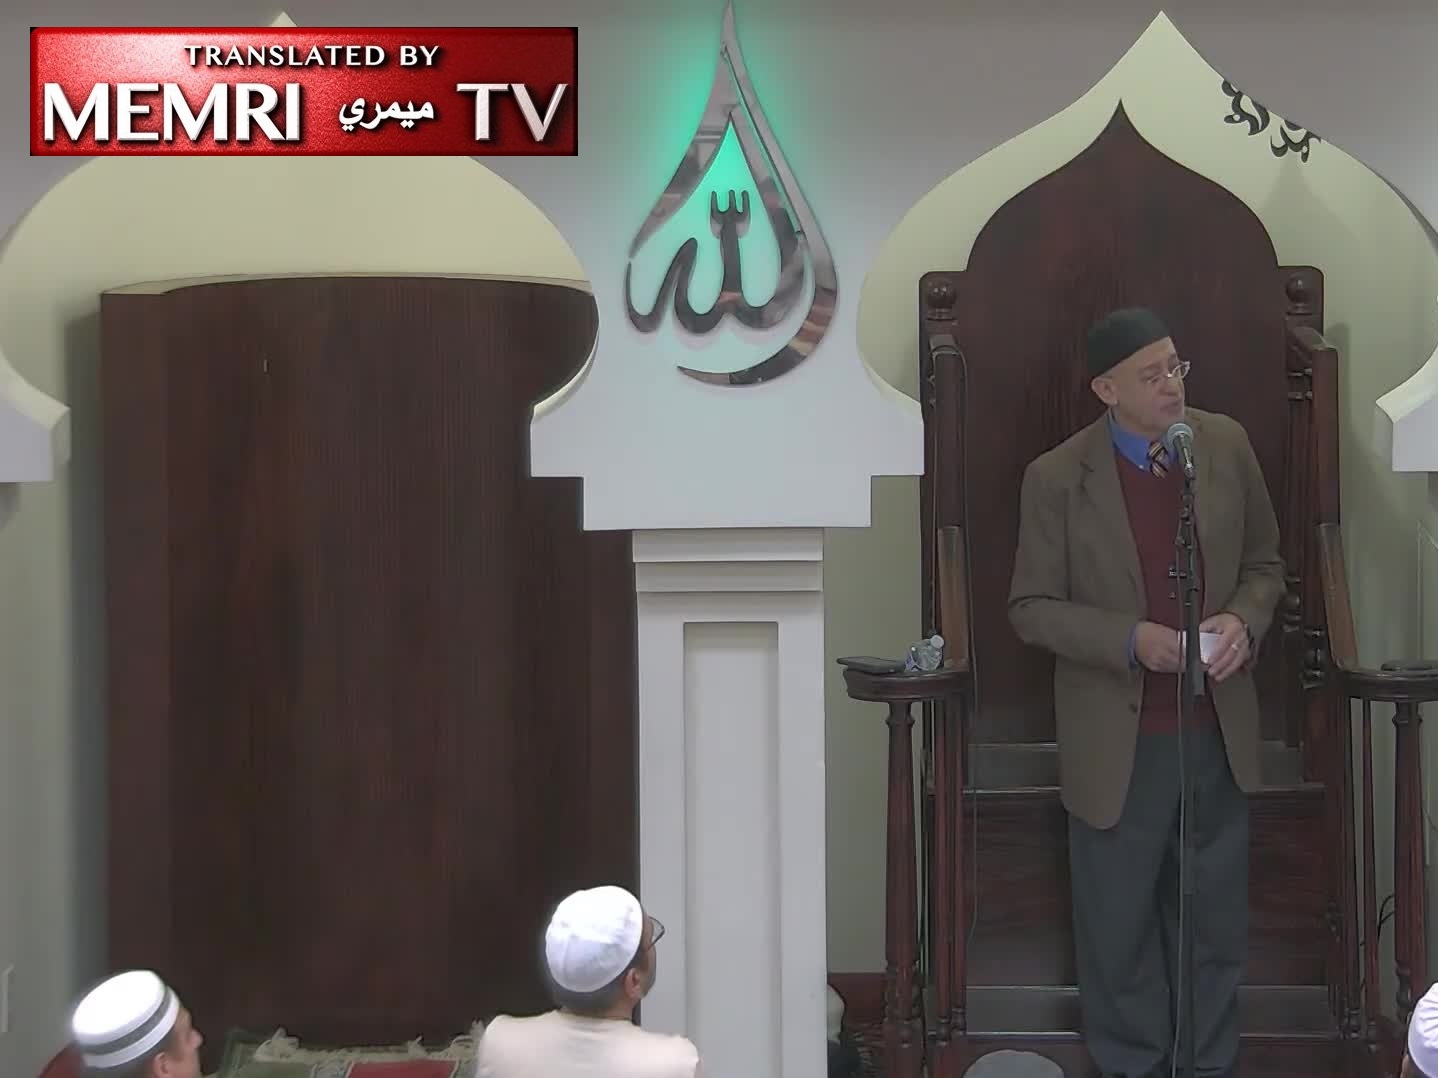 NJ Friday Sermon by Mohammad Abbasi, Rutgers University Faculty Member: Coronavirus Is Divine Retribution for China's Treatment of Uyghur Muslims; It Is the Least the Chinese Should Suffer, May Allah Punish Them Further